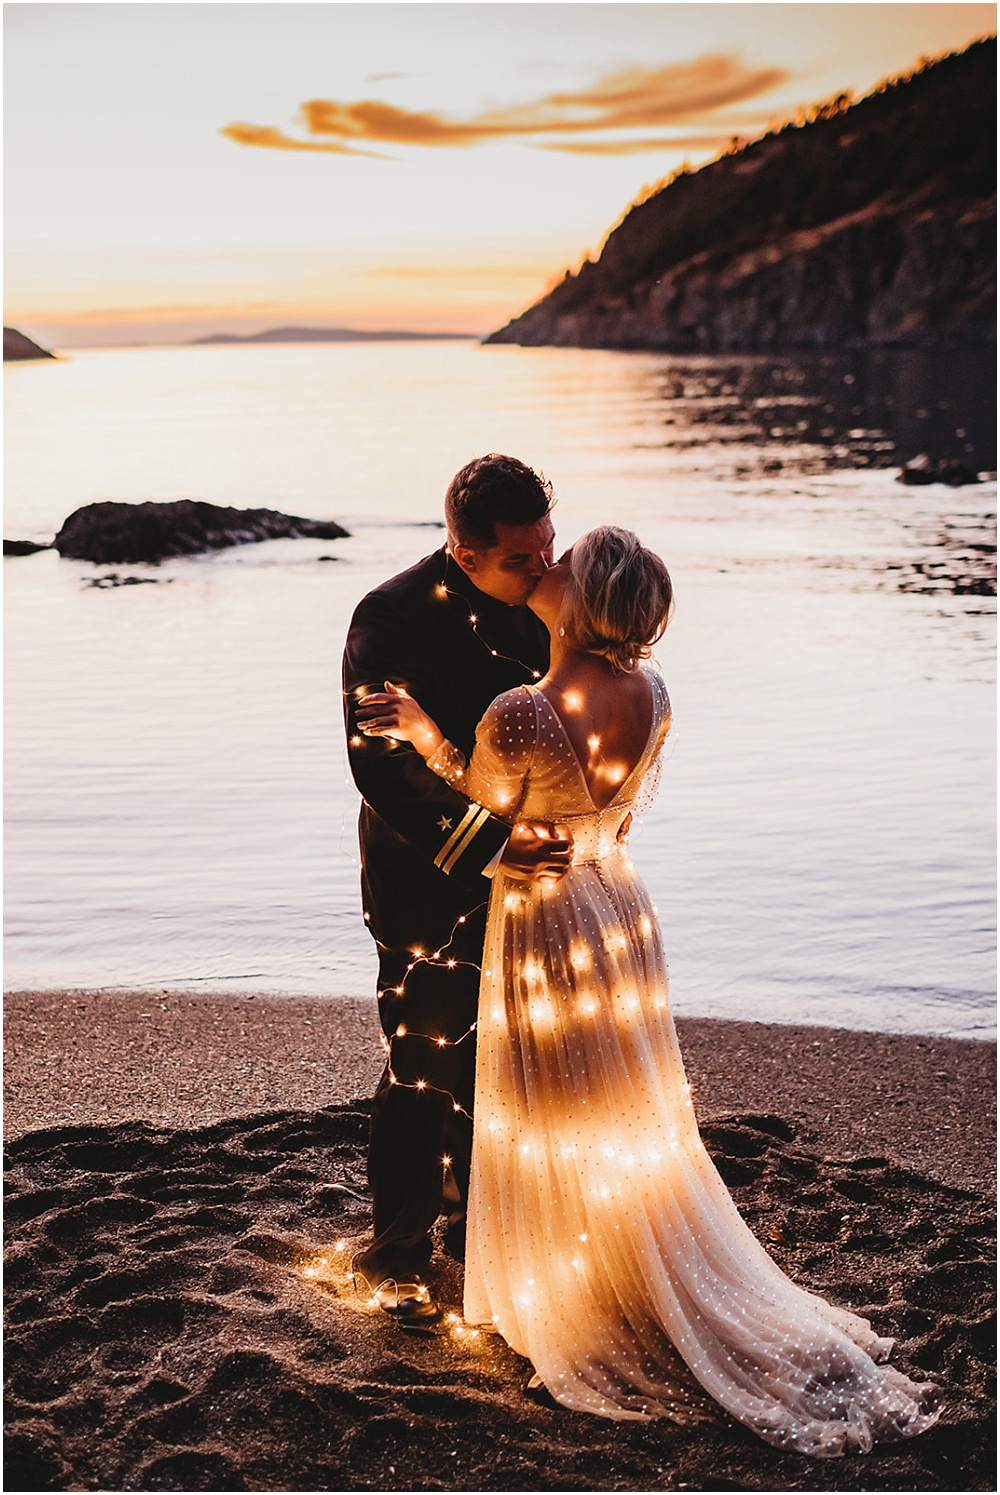 Bride and groom illuminated by lights